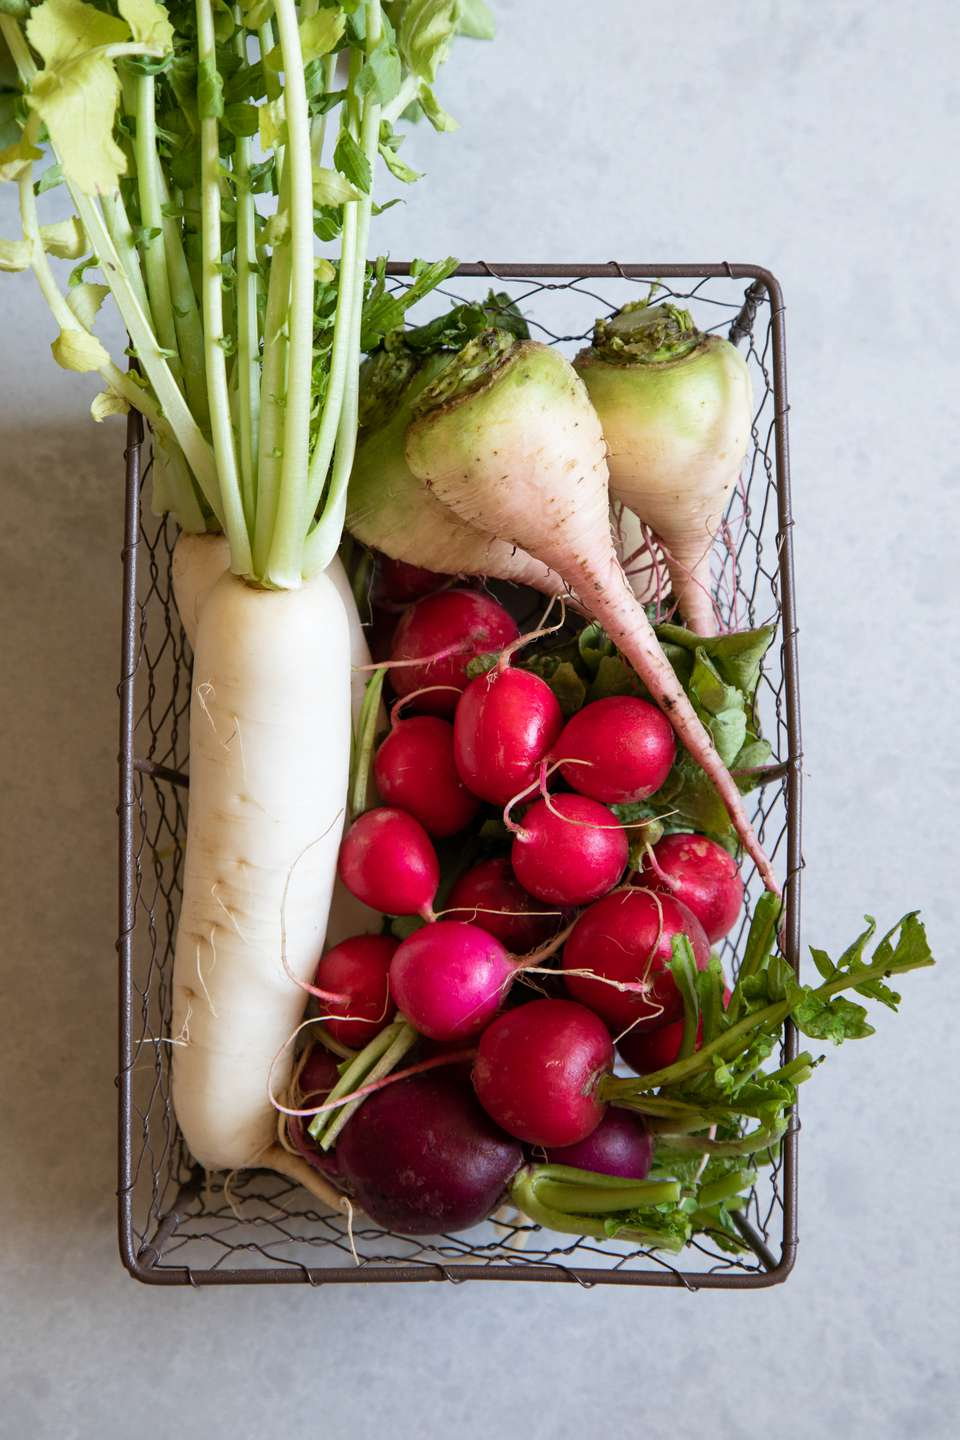 All types of radishes in a metal basket